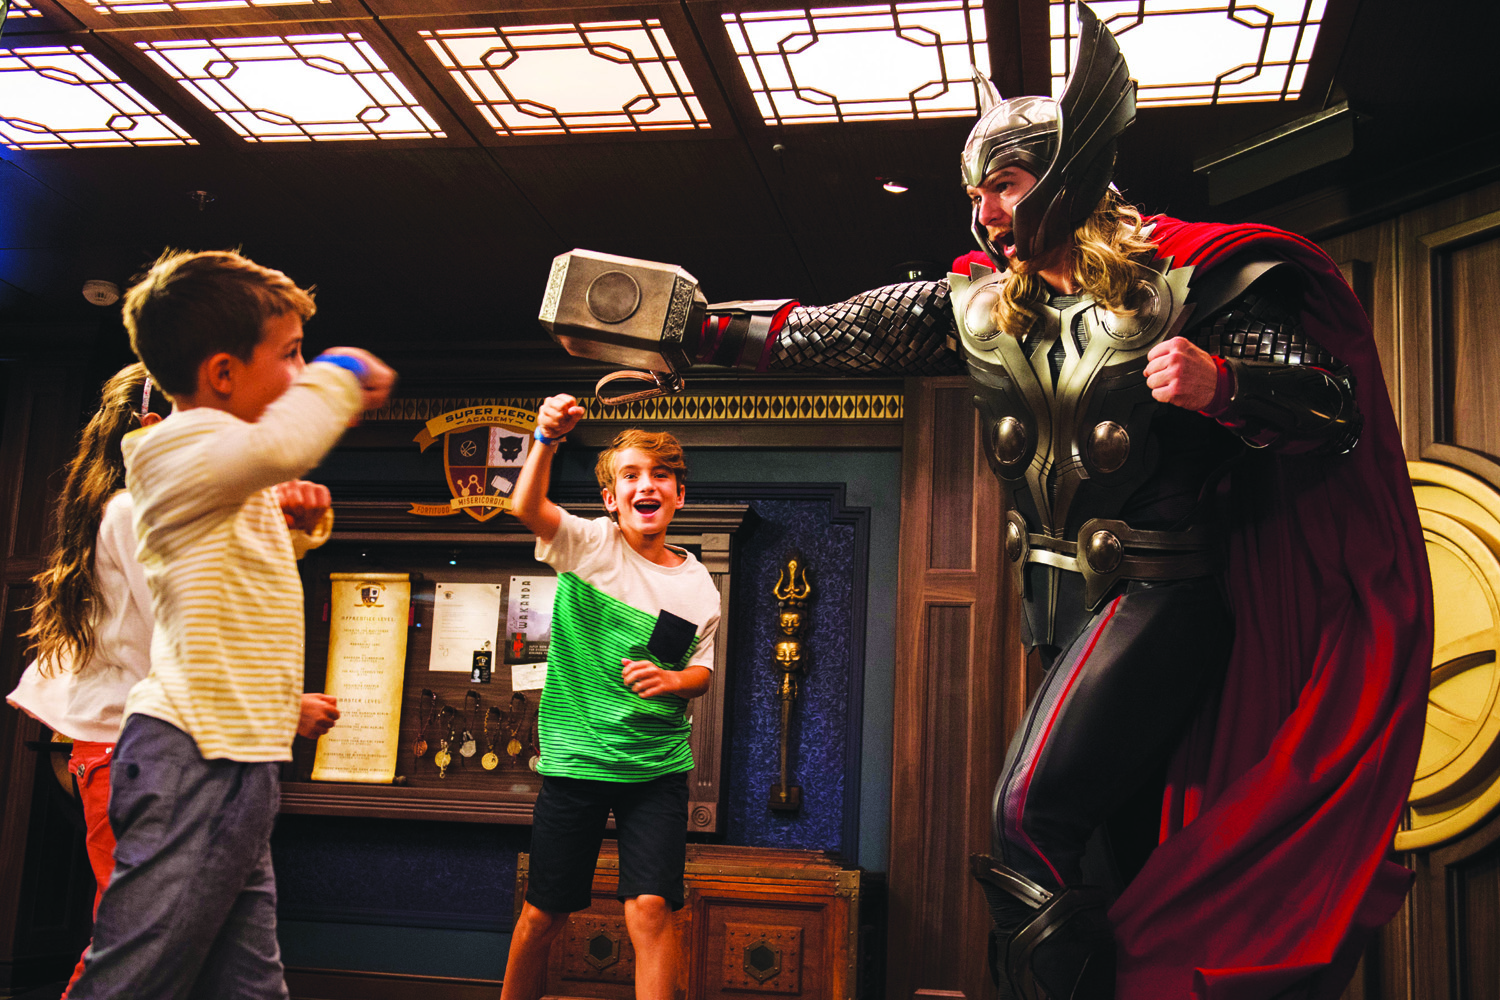 In Disney's Oceaneer Club aboard the Disney Fantasy, young guests come face-to-face with the mighty Thor to discover what it takes to become a true hero. Children build and decorate their own hammers, similar to Thor's own Mjolnir and learn how to use them to battle evil forces.